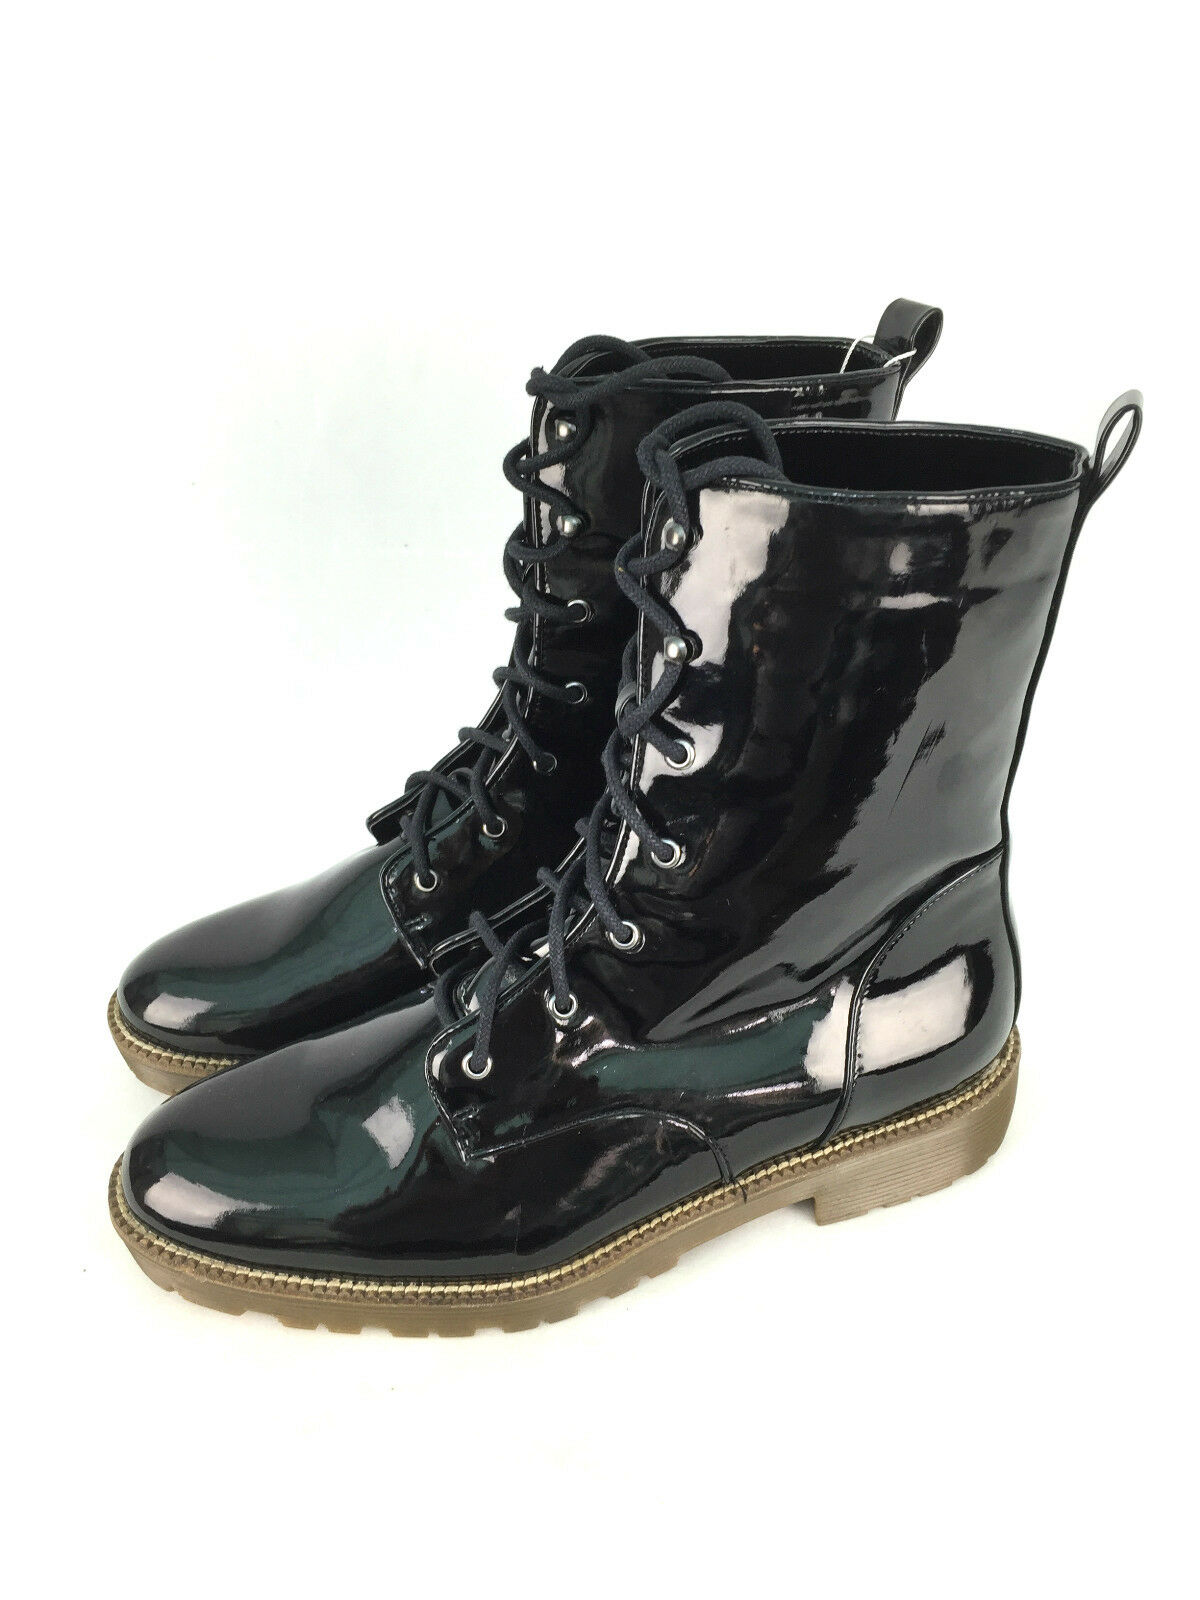 ZARA LACE UP PATENT ANKLE BOOTS SIZE UK7/EUR40/US9